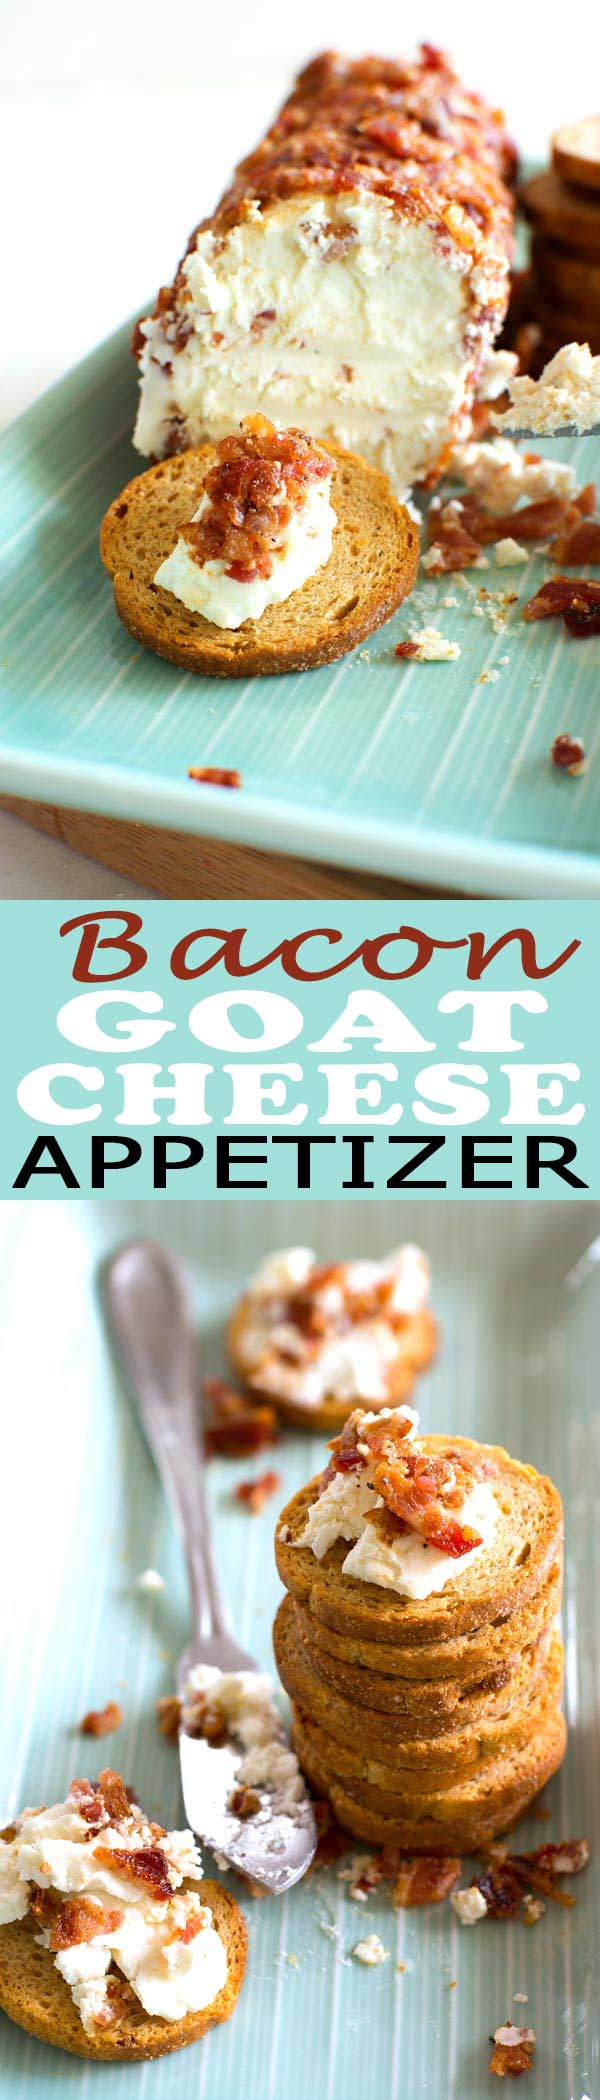 Creamy Bacon Goat Cheese Log: this easy appetizer has only two ingredients and tastes incredible!  #appetizer #easter #food #foodgasm #foodgawker #bacon #cheese #recipe #recipeoftheday #baconday #recipeideas